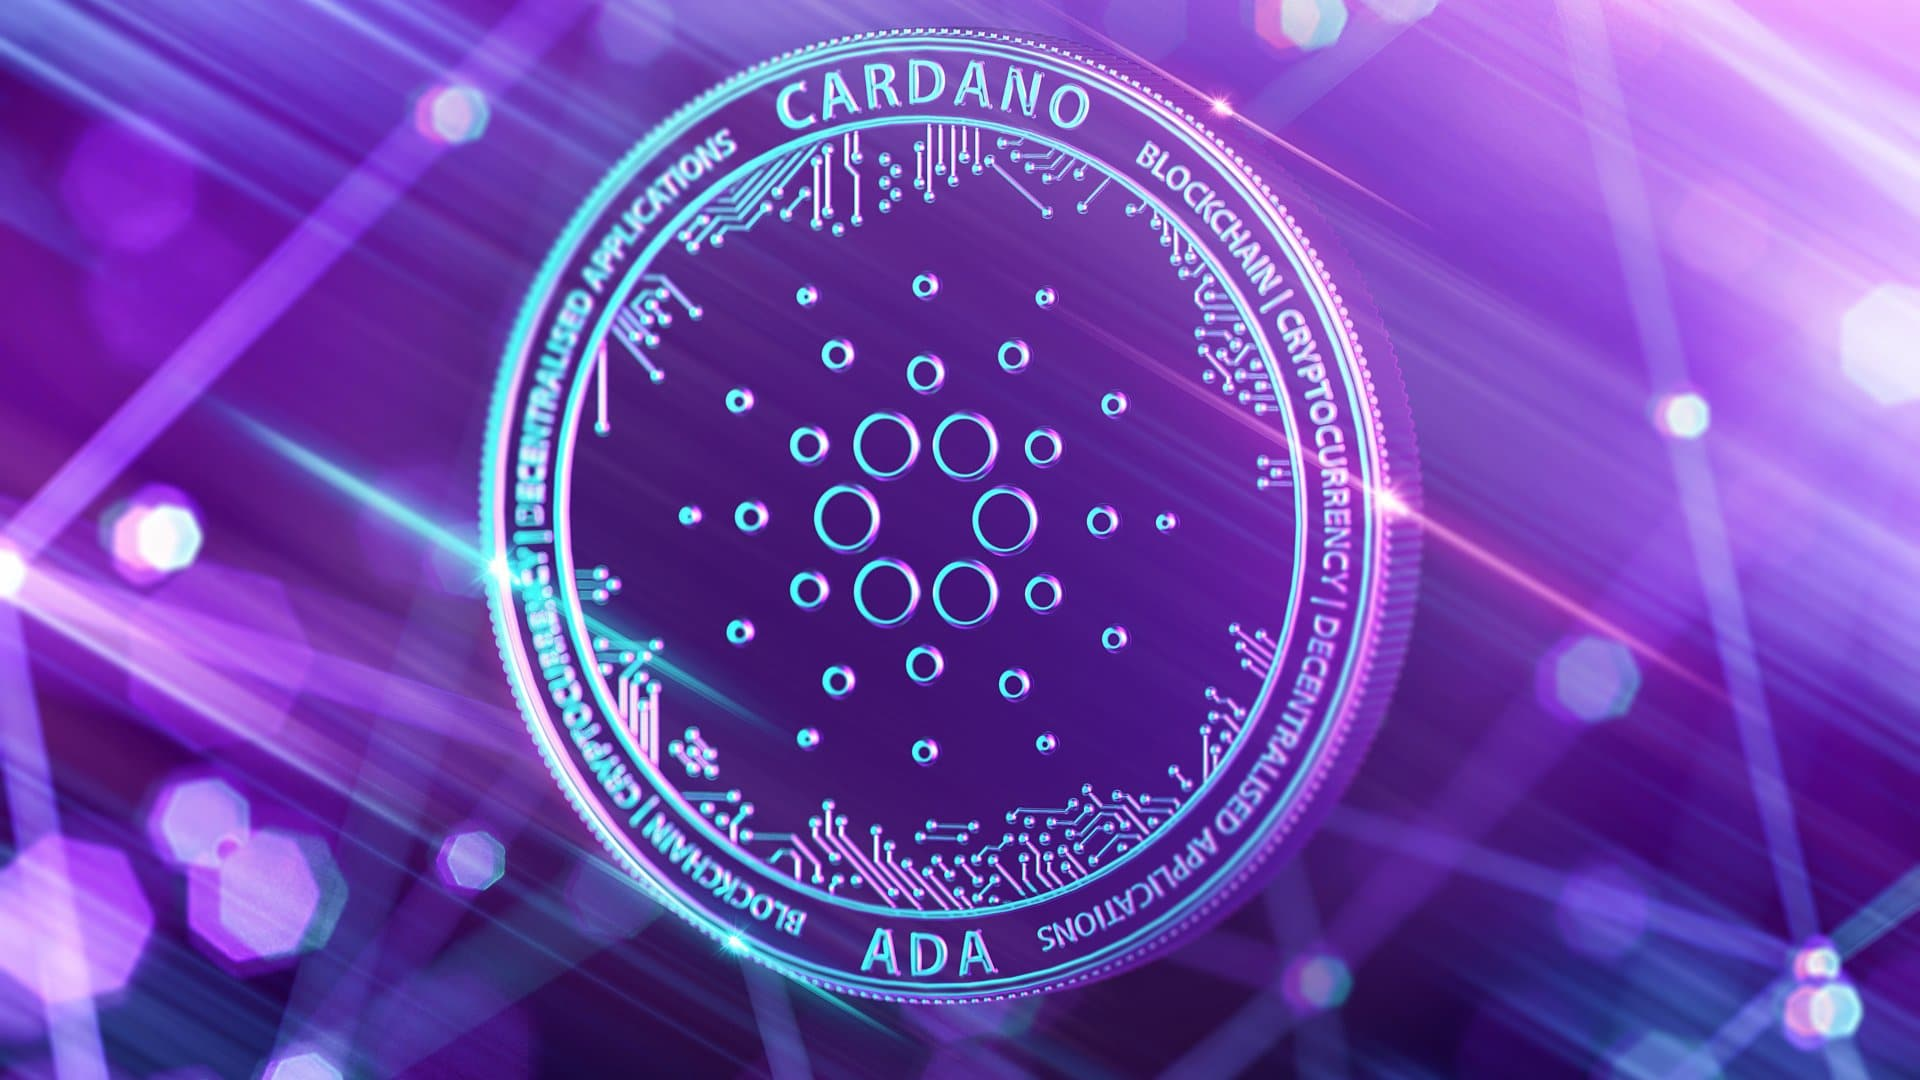 Cardano: staking at its debut